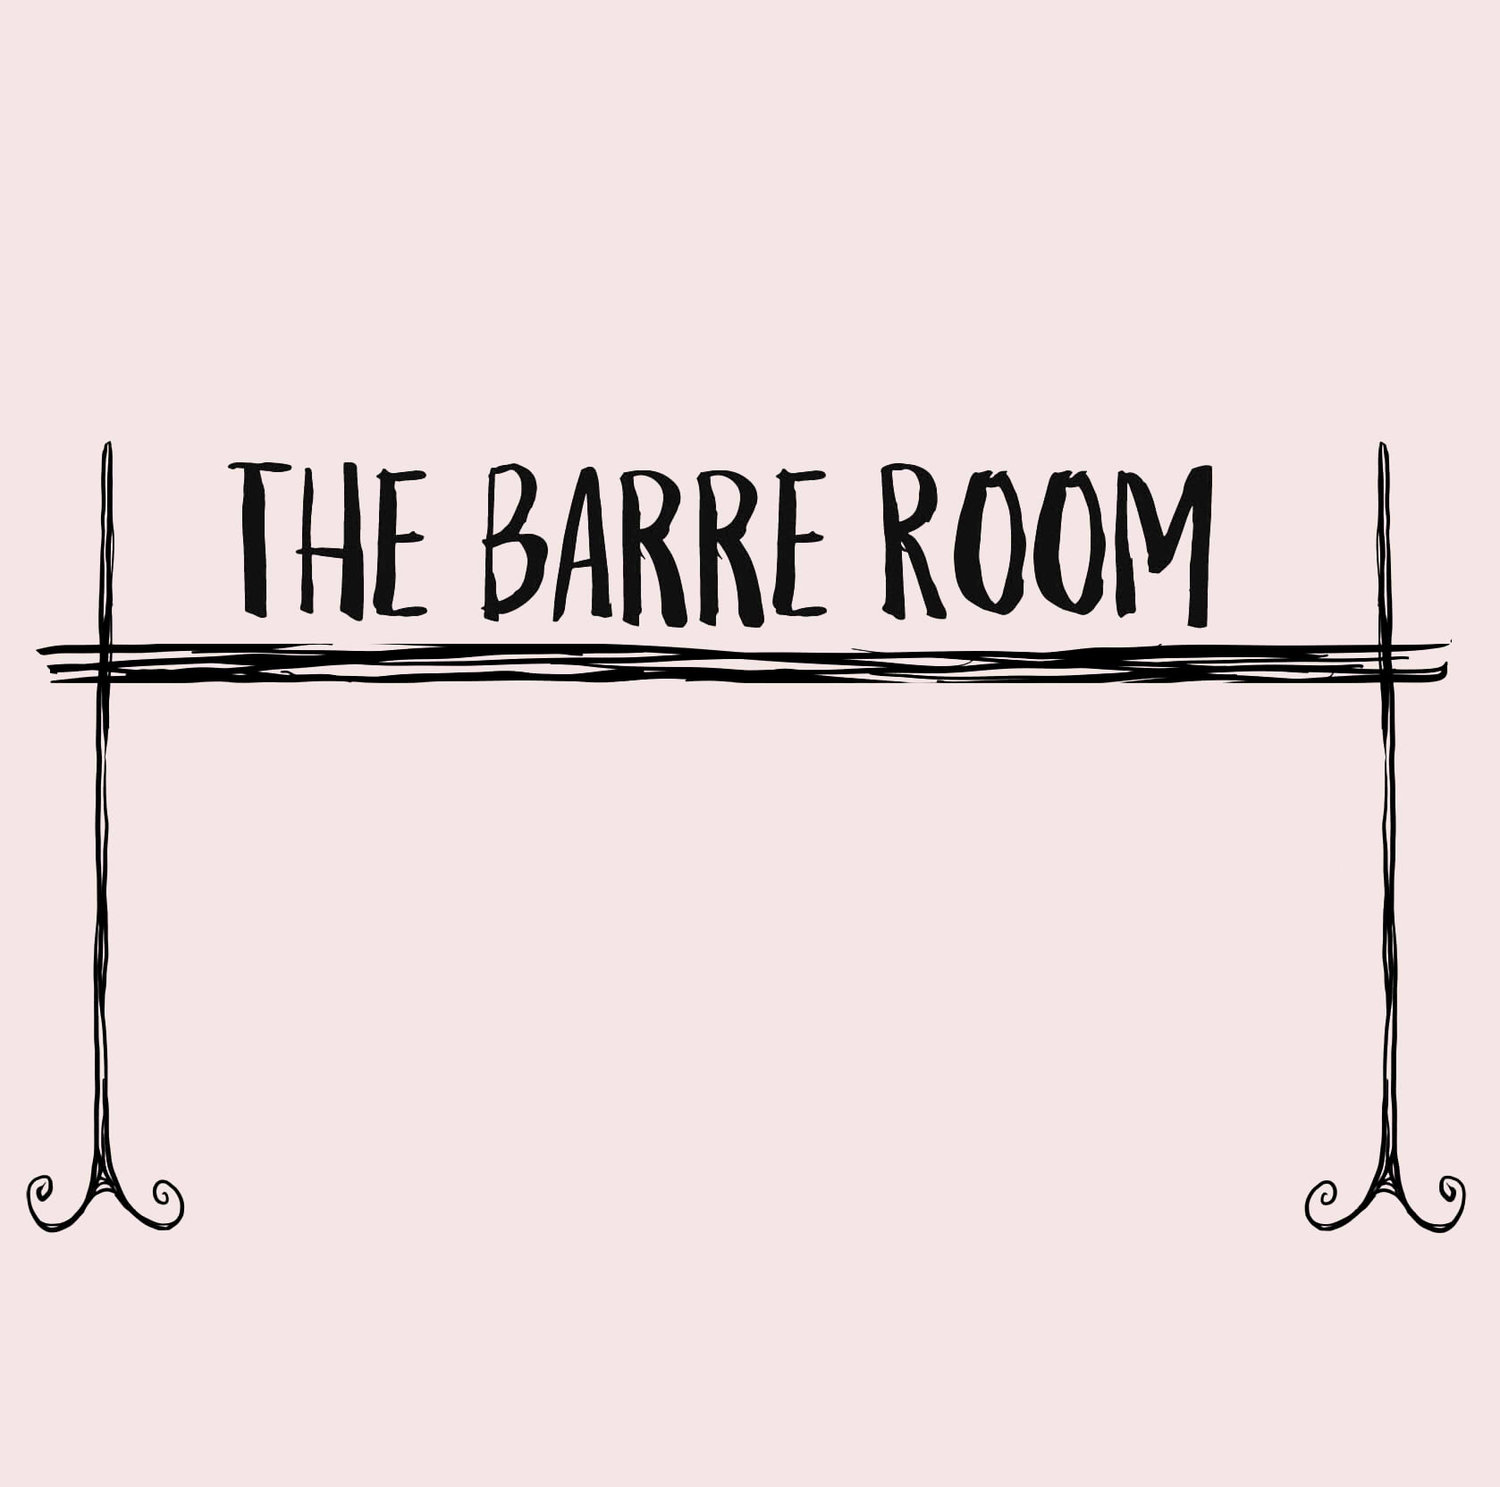 The Barre Room